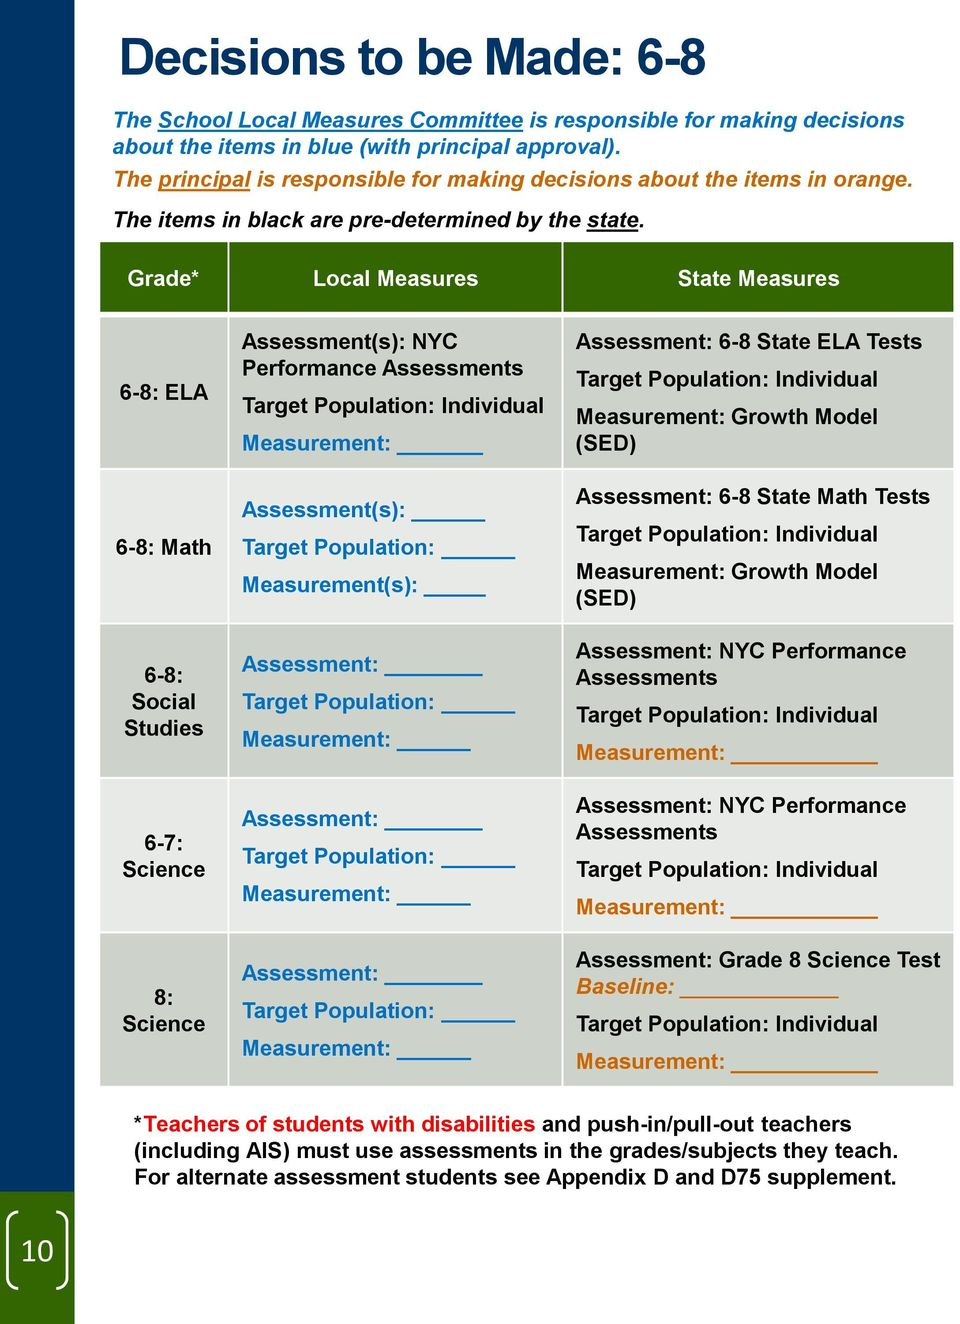 Grade* Local Measures State Measures 6-8: ELA 6-8: Math 6-8: Social Studies 6-7: Science 8: Science Assessment(s): NYC Performance Assessments Target Population: Individual Measurement: